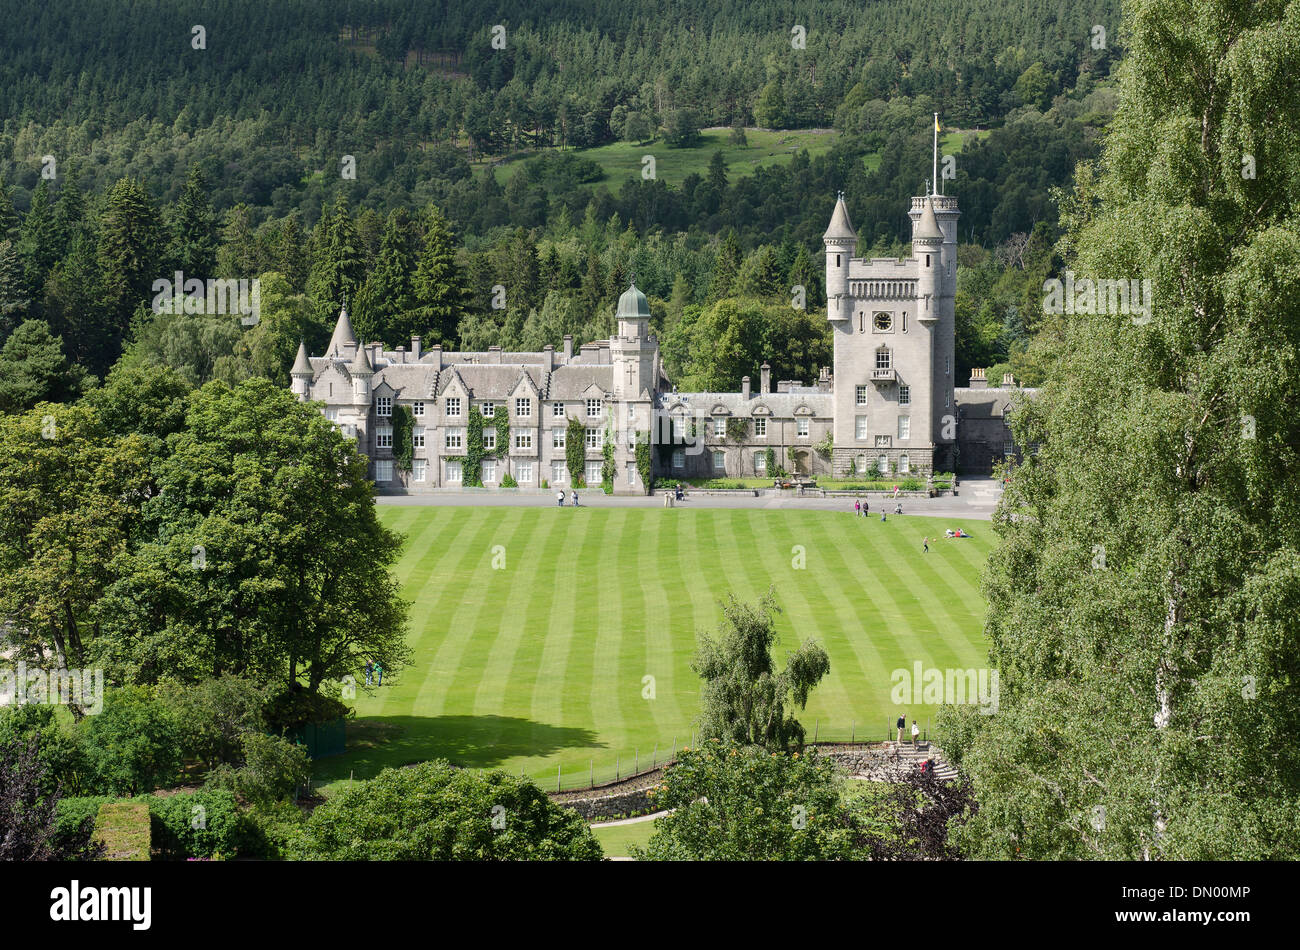 balmoral castle royal deeside with garden and  lawn - Stock Image